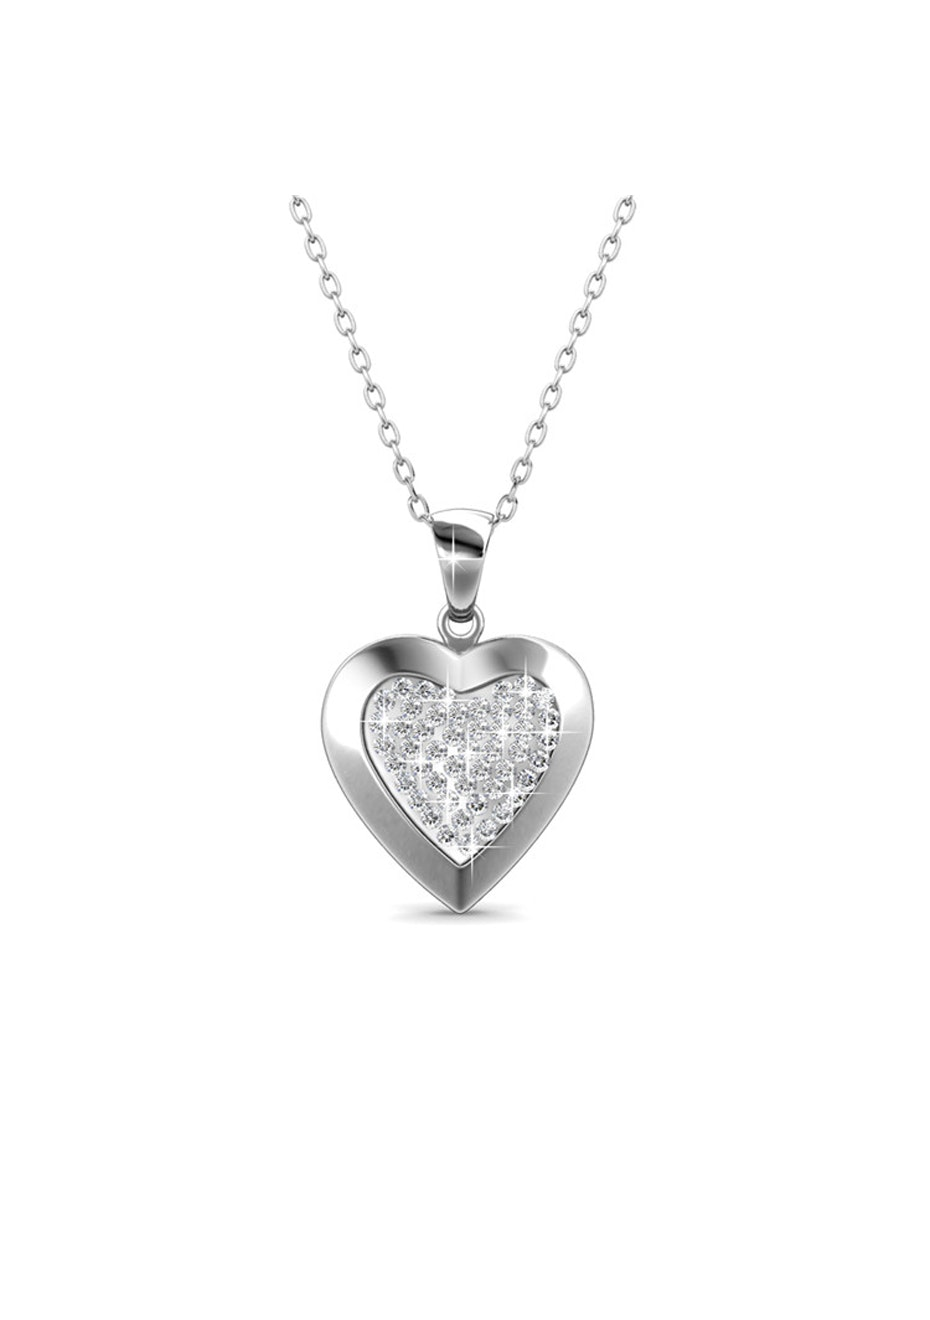 Heart In Heart Pendant Necklace Embellished with Crystals from Swarovski